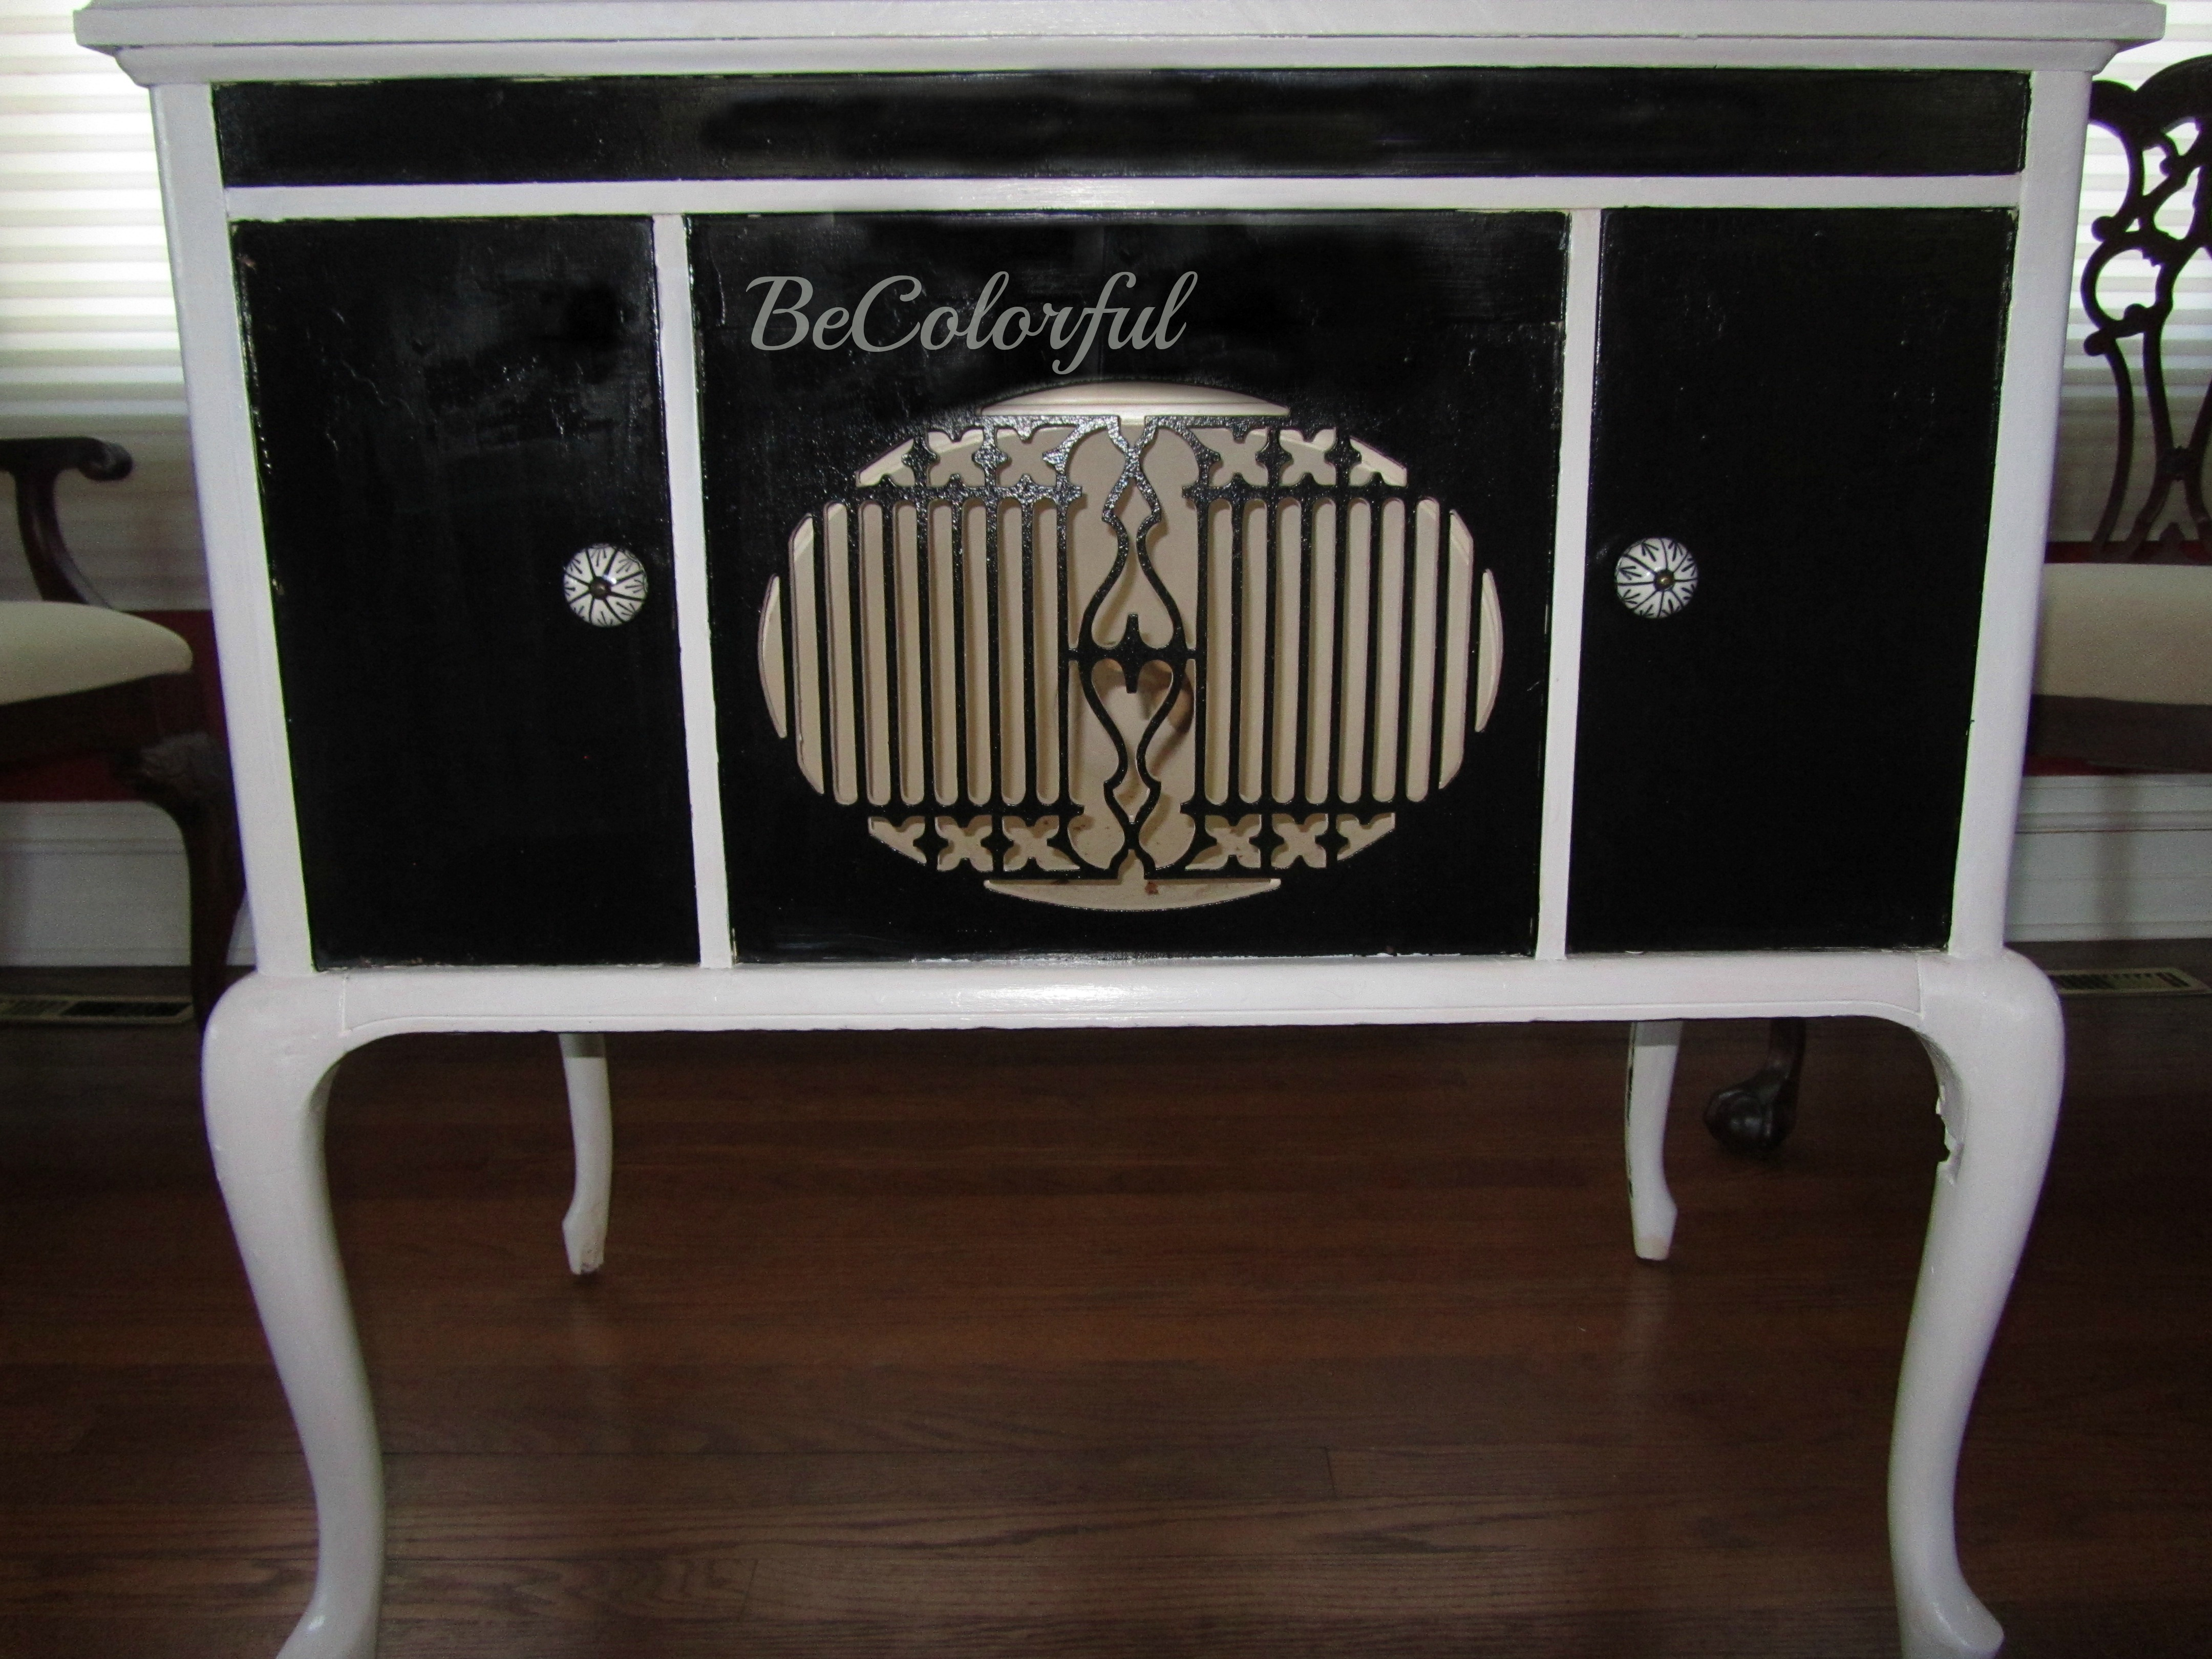 Sensational Dressing Up A Vintage Cabinet With Hollywood Regency Flair Download Free Architecture Designs Sospemadebymaigaardcom